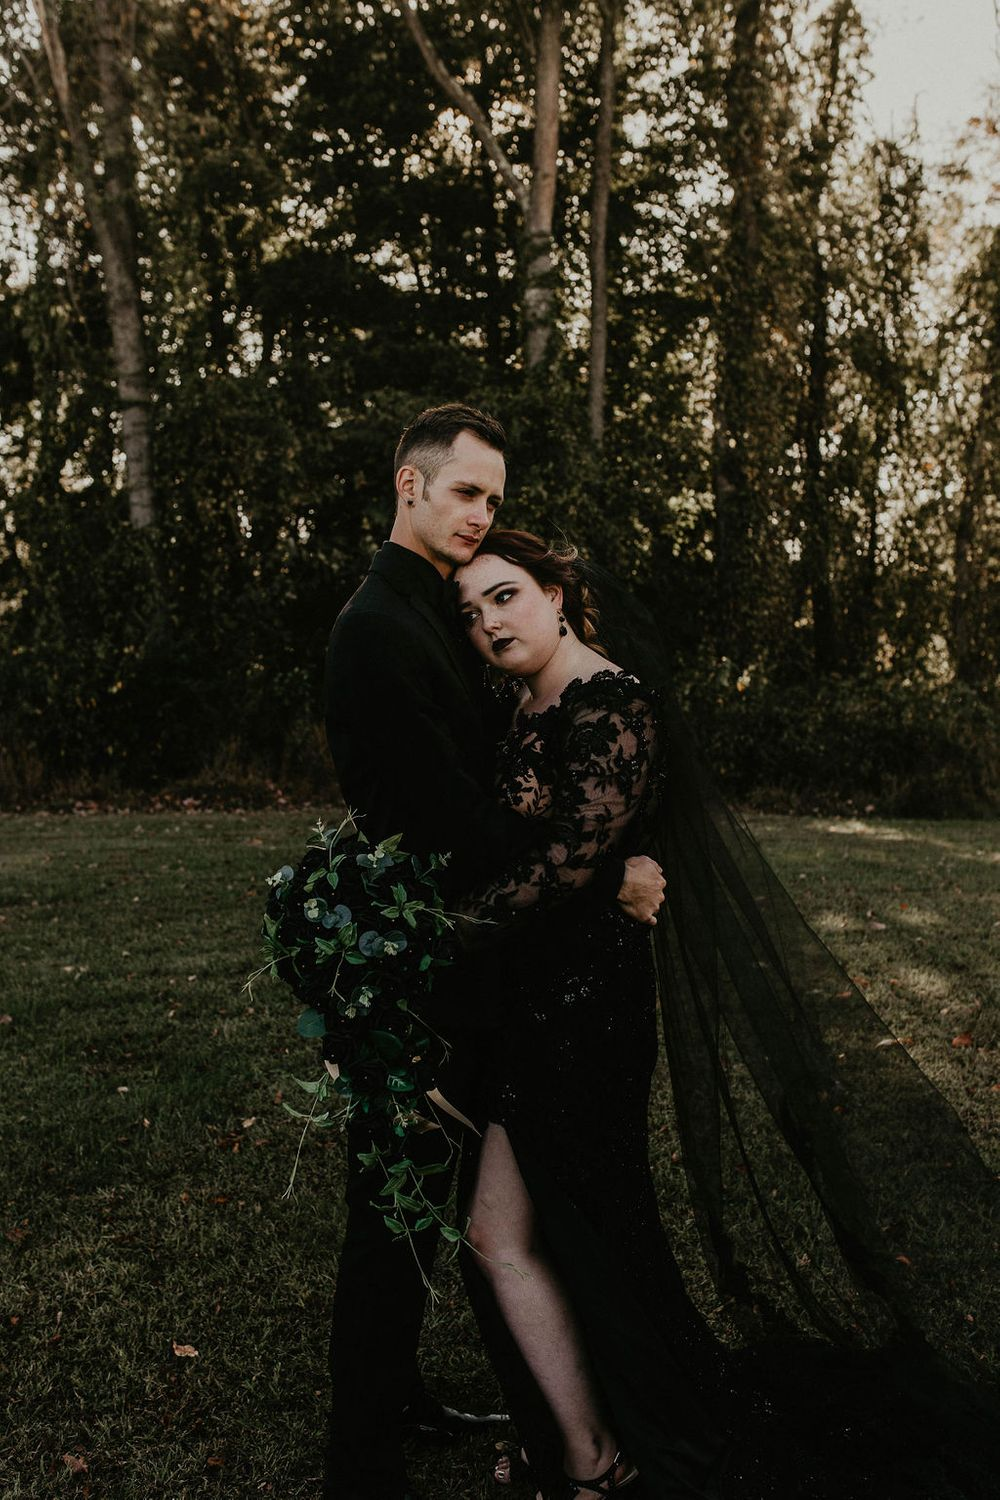 Black Wedding Dress, Bride & Groom, Dark & Moody Wedding